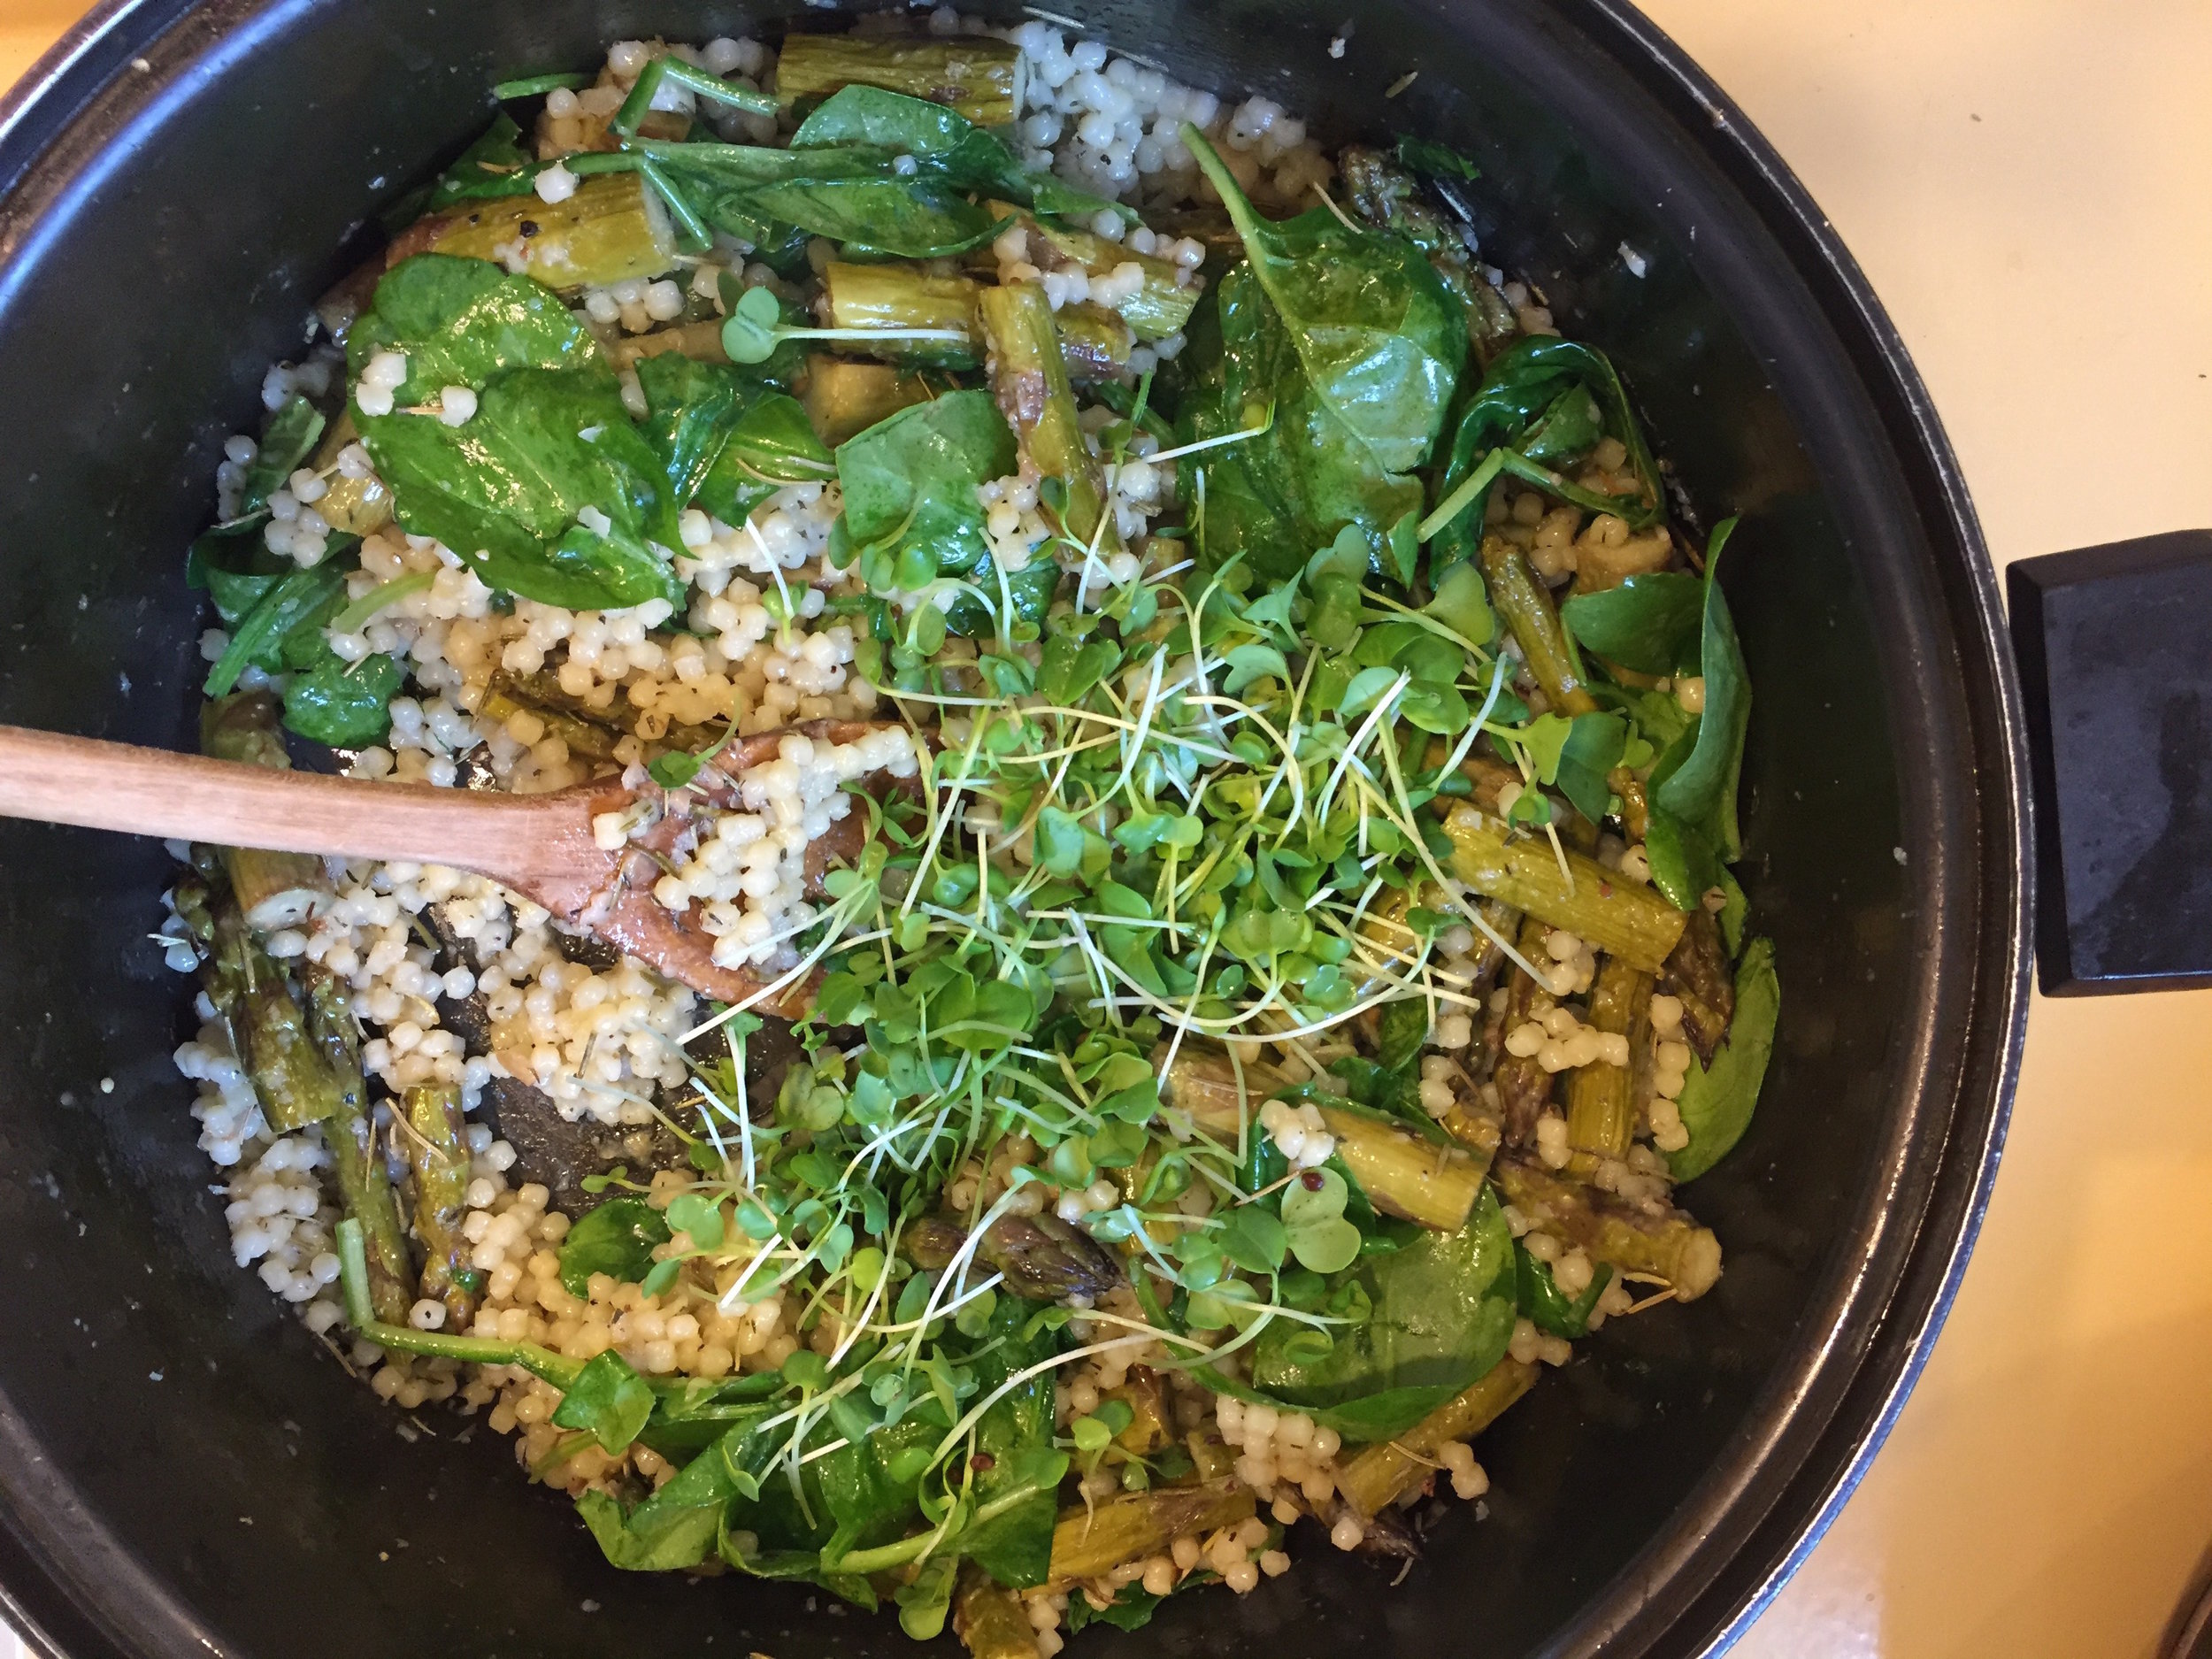 Adding Spinach and Microgreens to Couscous